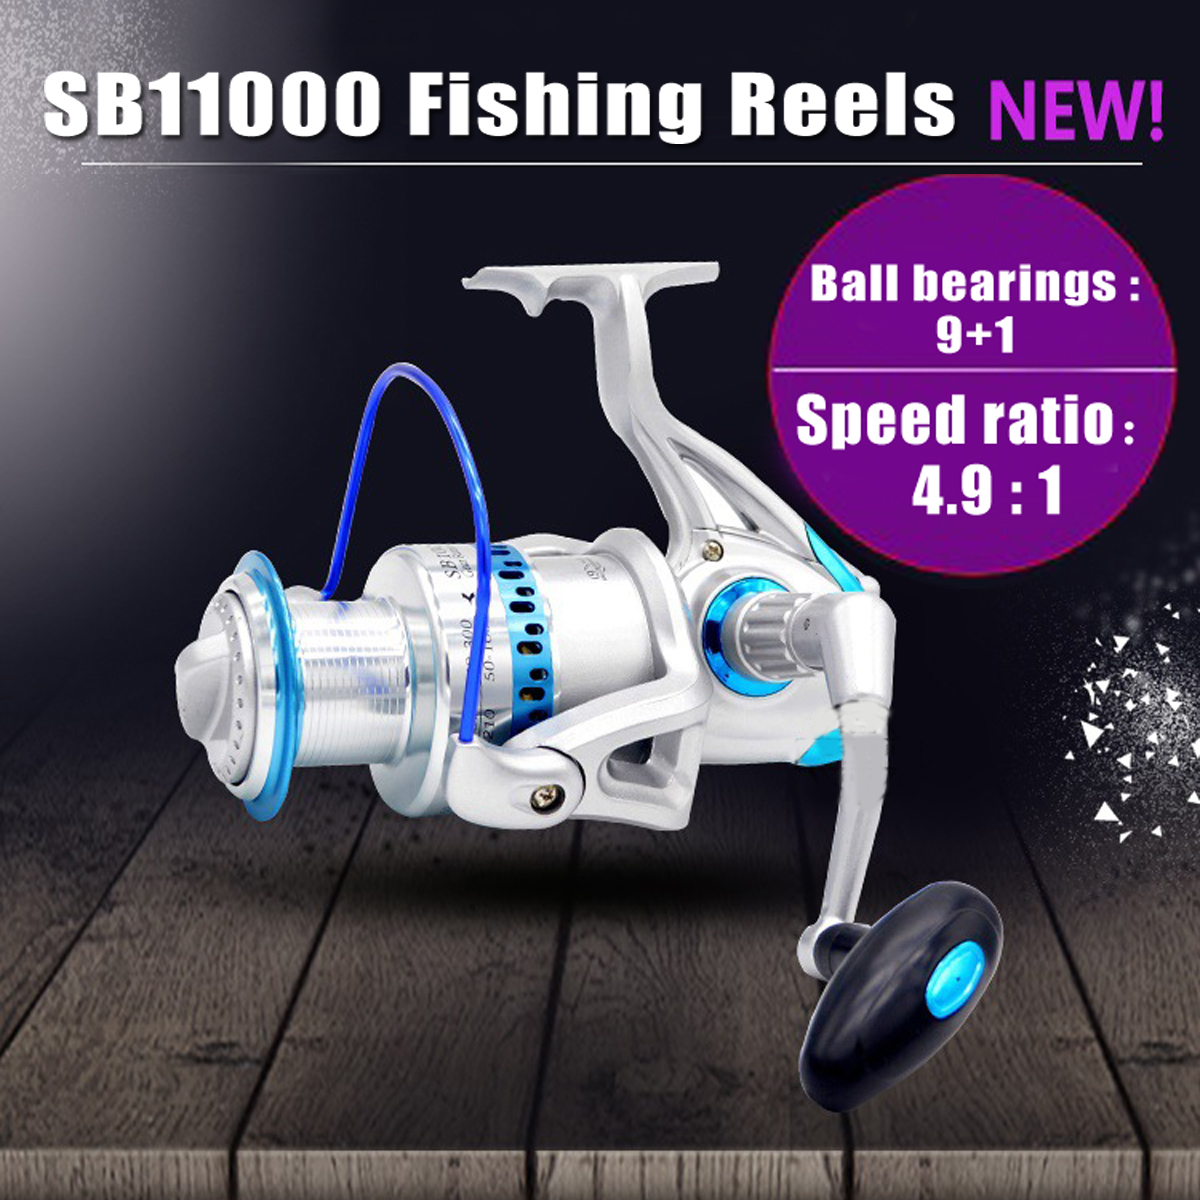 цена на SB11000 4.5:1 High Speed Saltwater Spinning Fishing Reel Metal Large Sea Fishing Reels